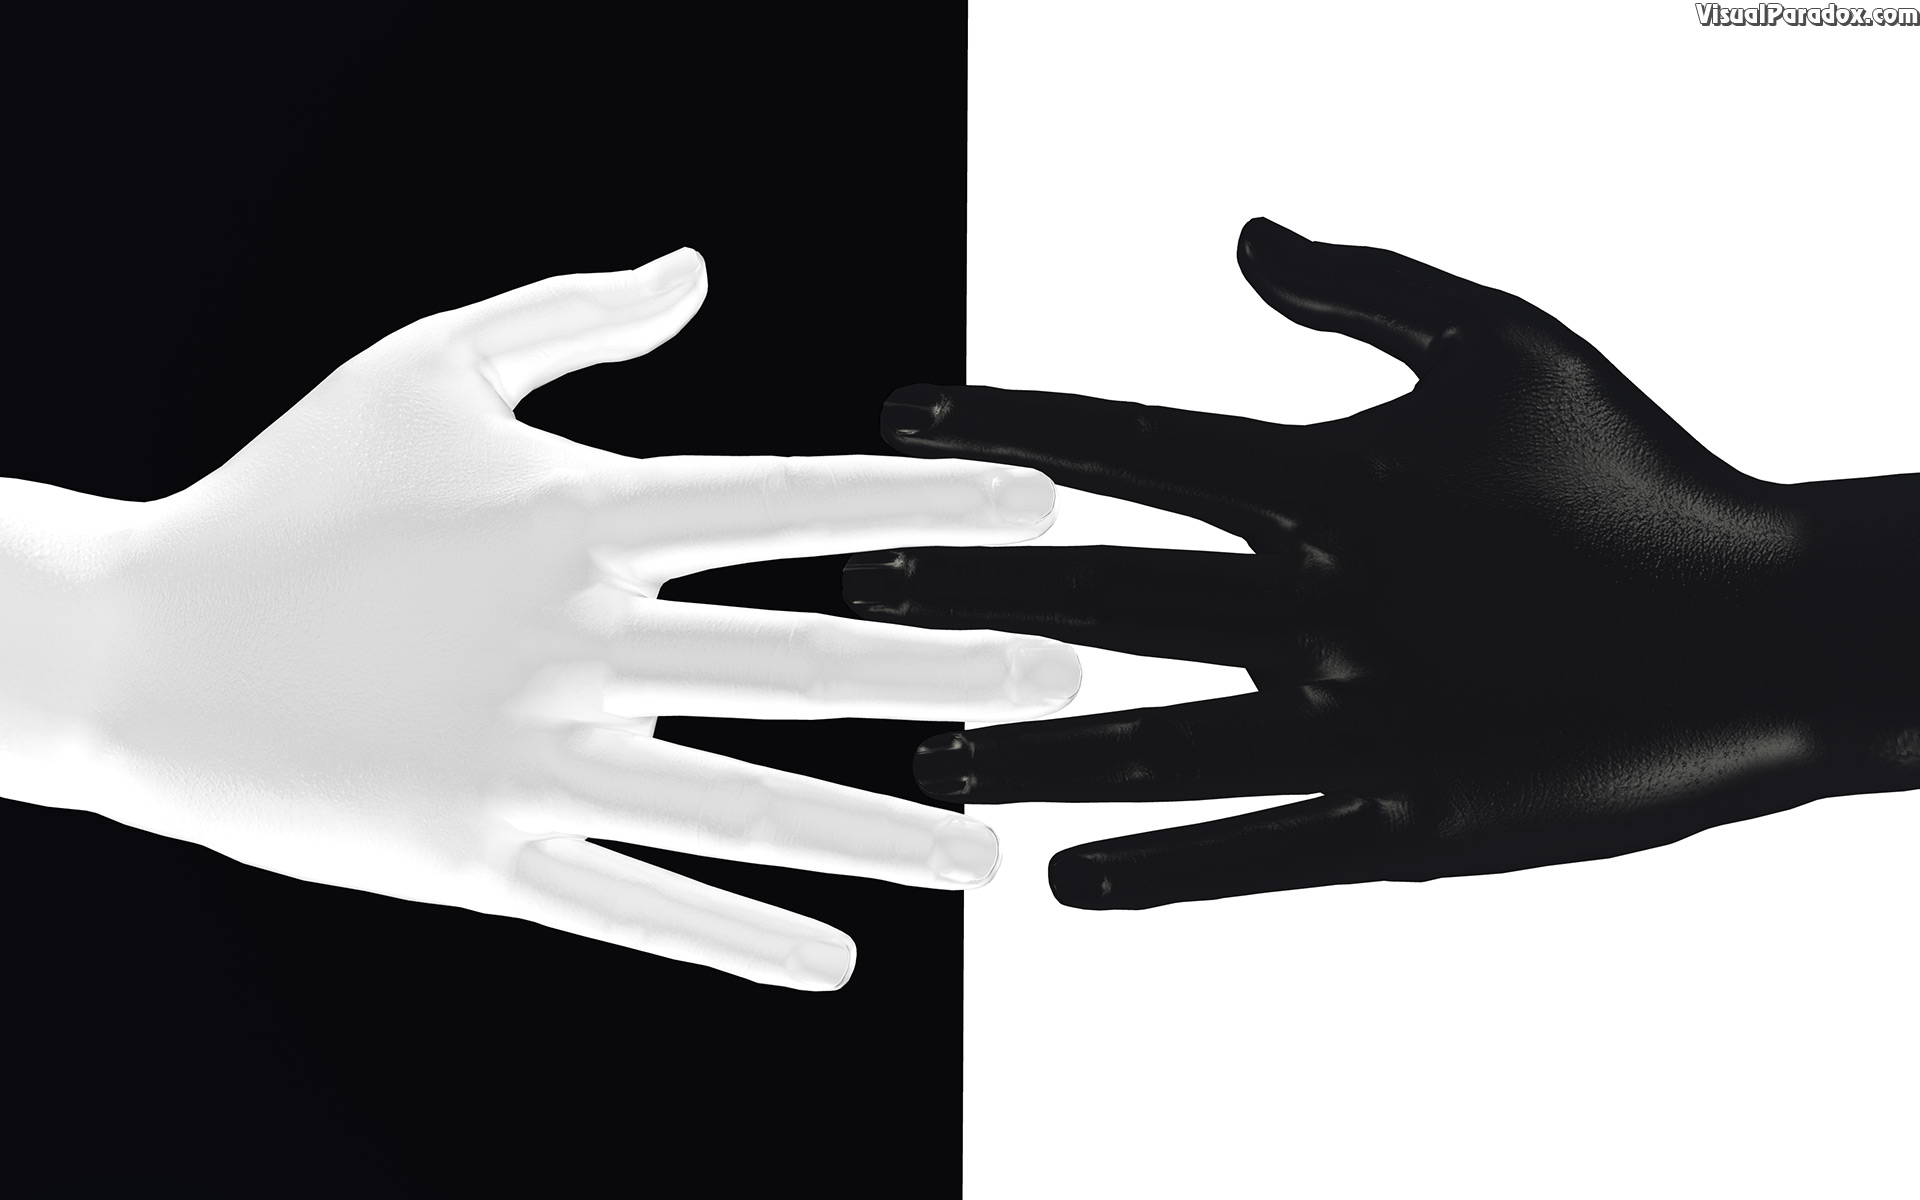 hands, digits, black, white, color, colour, contrast, touch, 3d, wallpaper